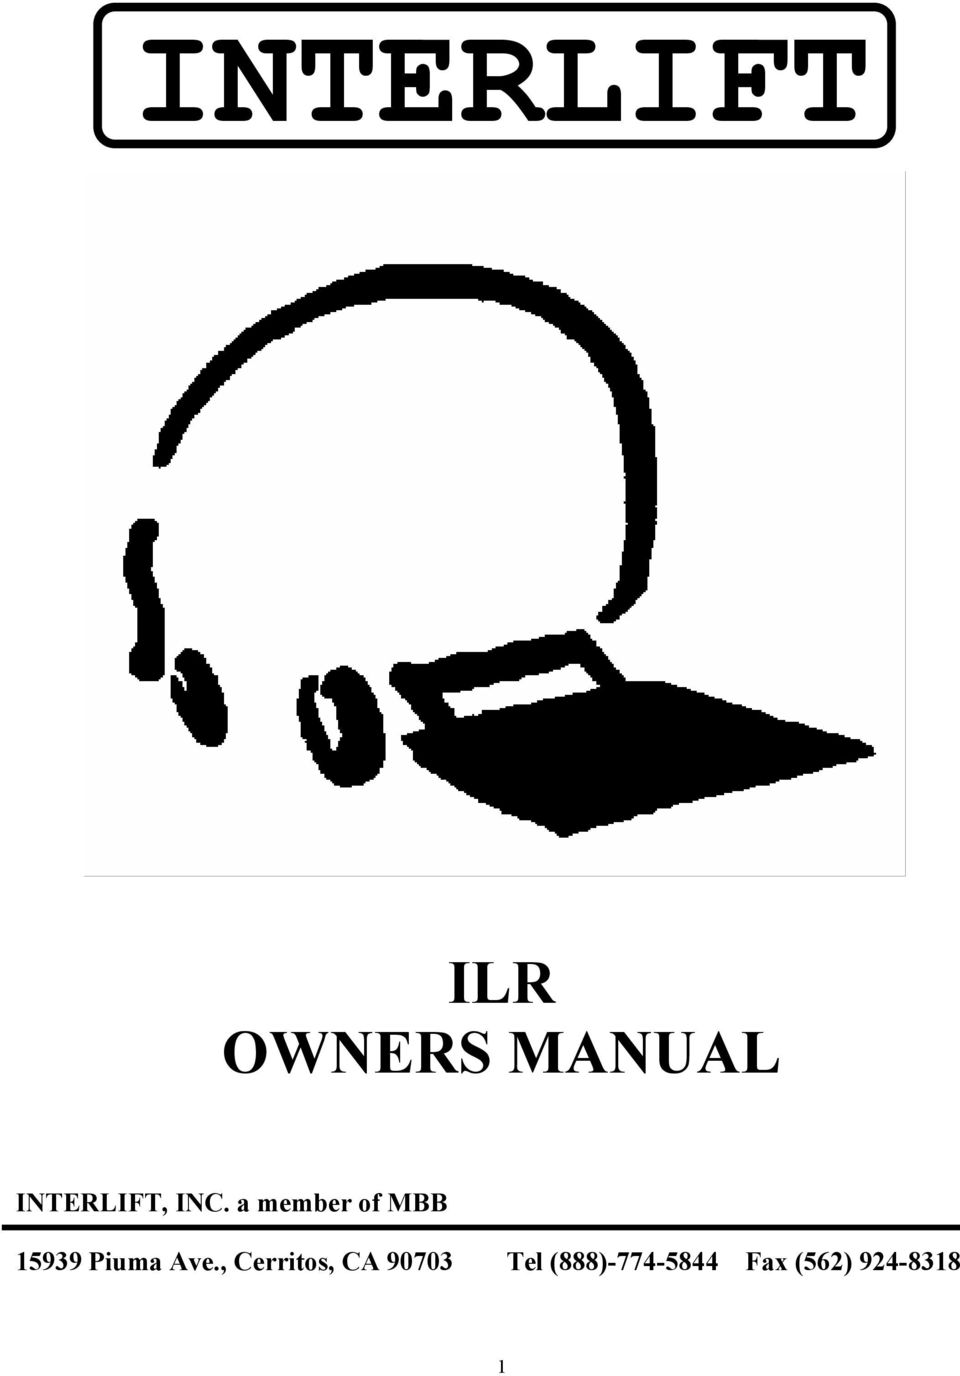 INTERLIFT ILR OWNERS MANUAL. INTERLIFT, INC. a member of